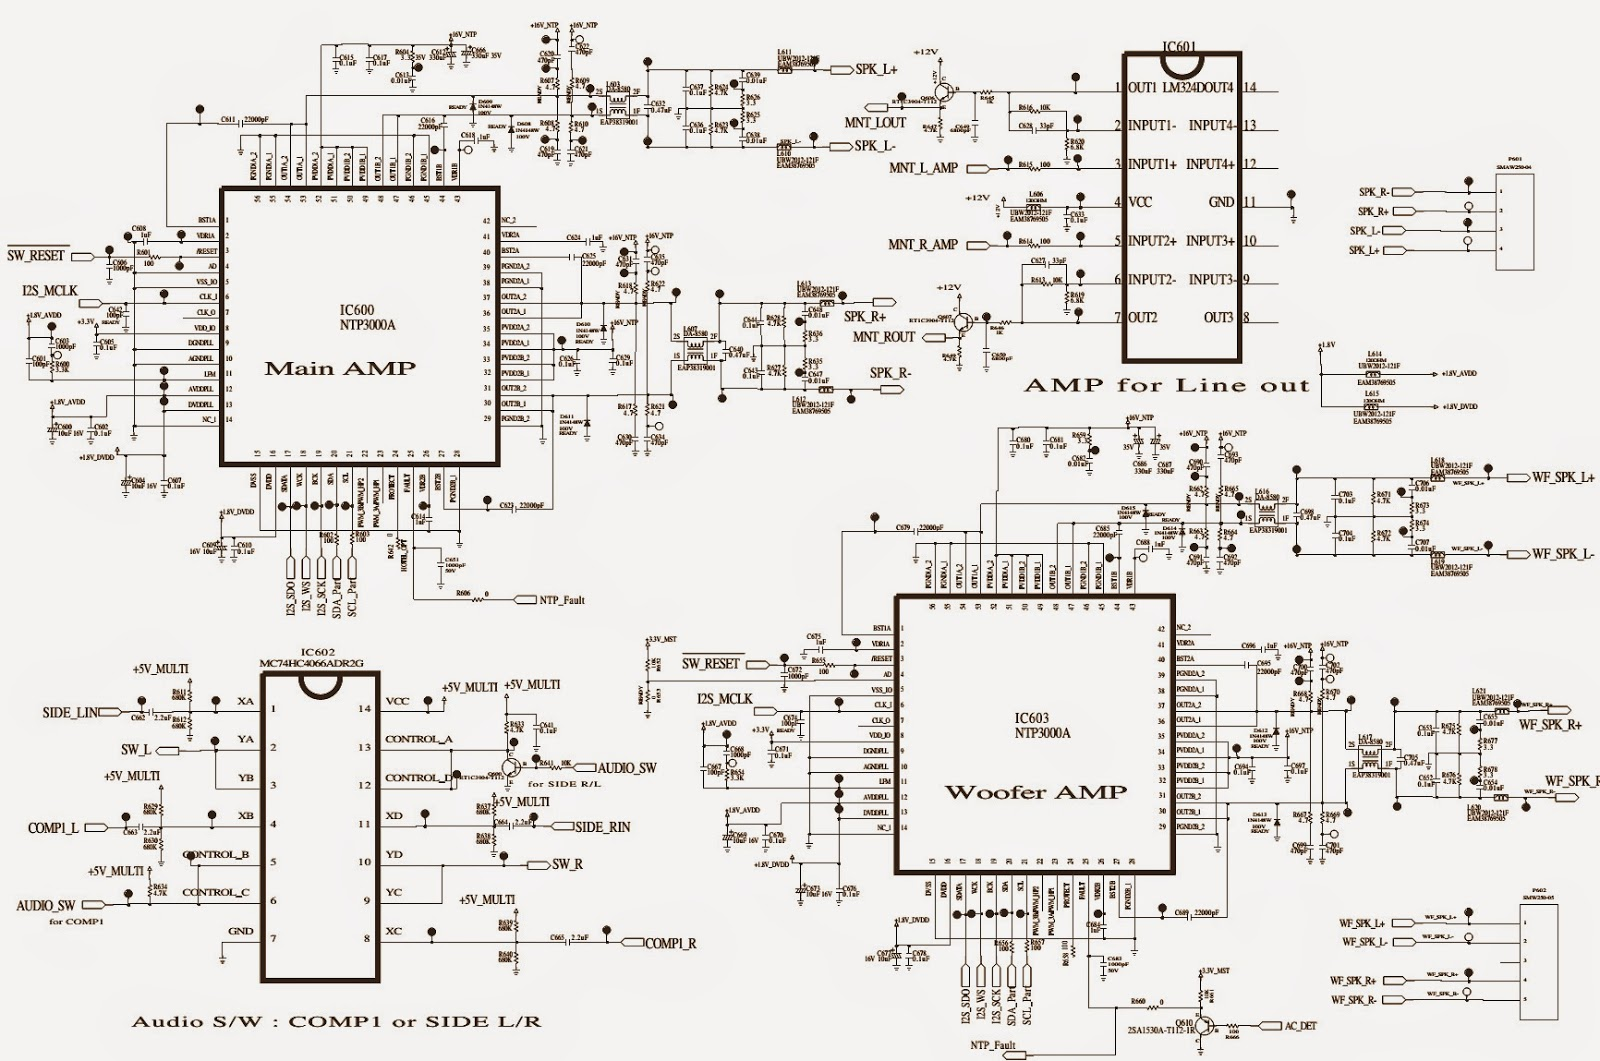 Electro Help 02 25 15 Pcb Printed Circuit Boardcircuit Board For Led Light 0011 Urc Set Up Code List Lg Goldstar